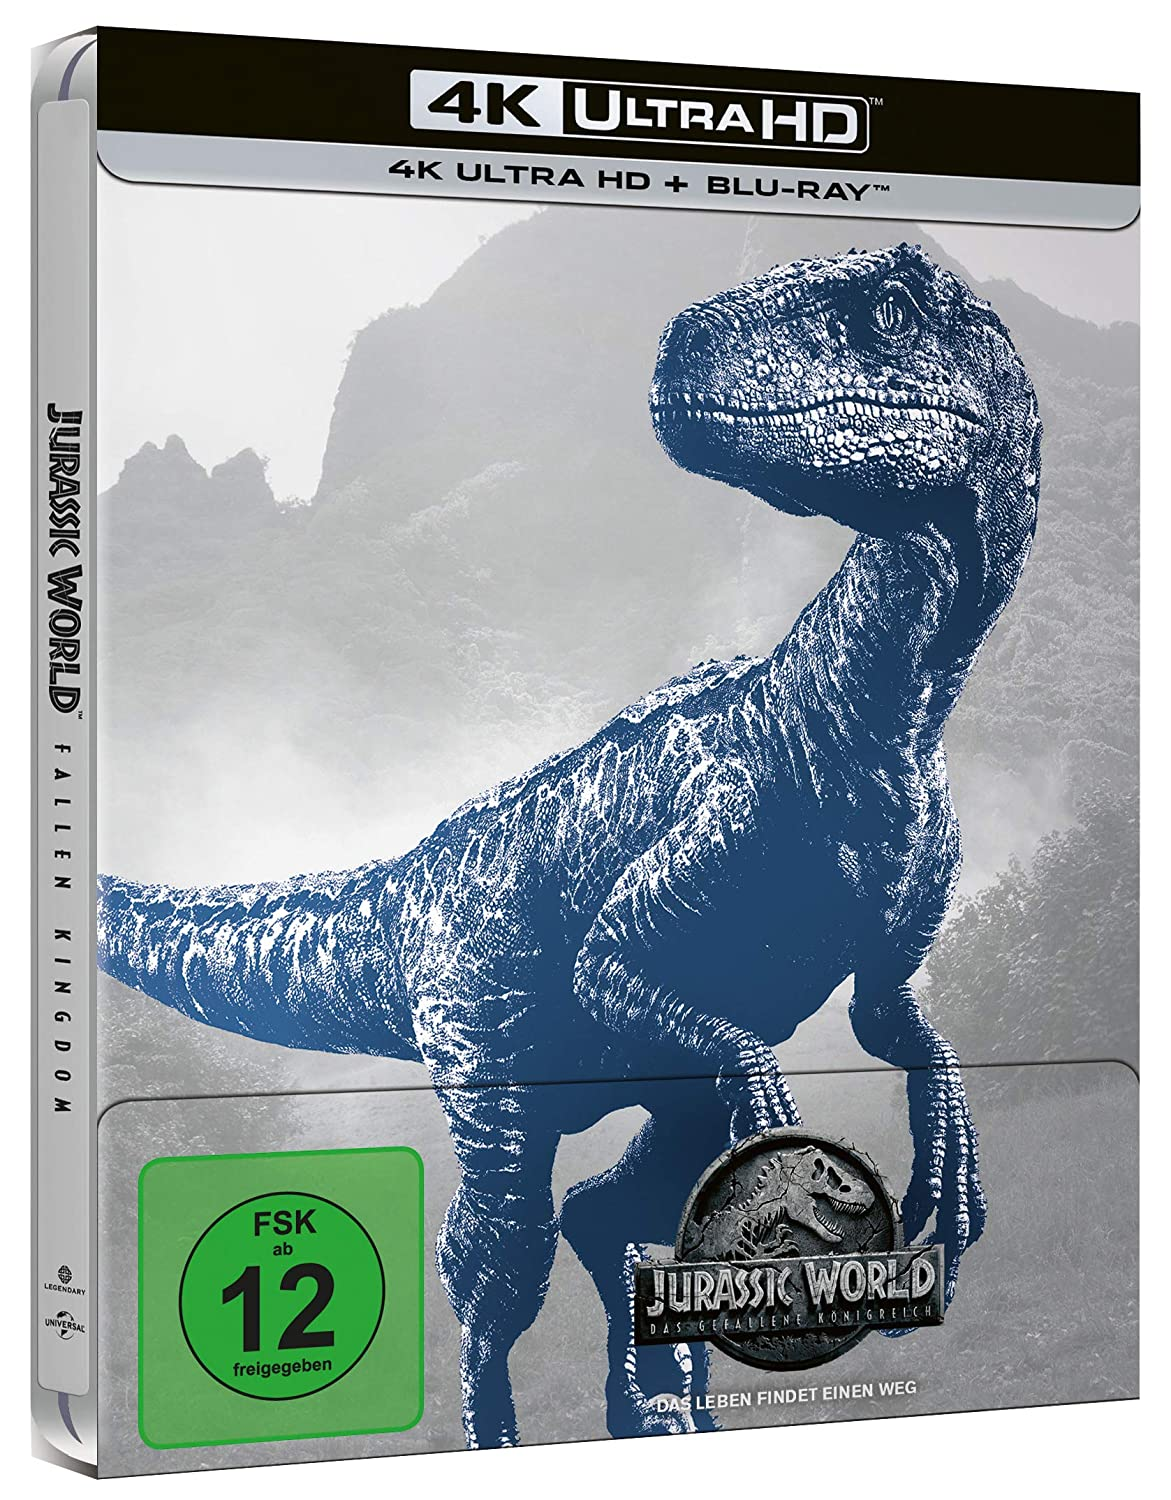 Jurassic World: Das gefallene Königreich (Amazon exklusives Steelbook) - Ultra HD Blu-ray [4k + Blu-ray Disc]